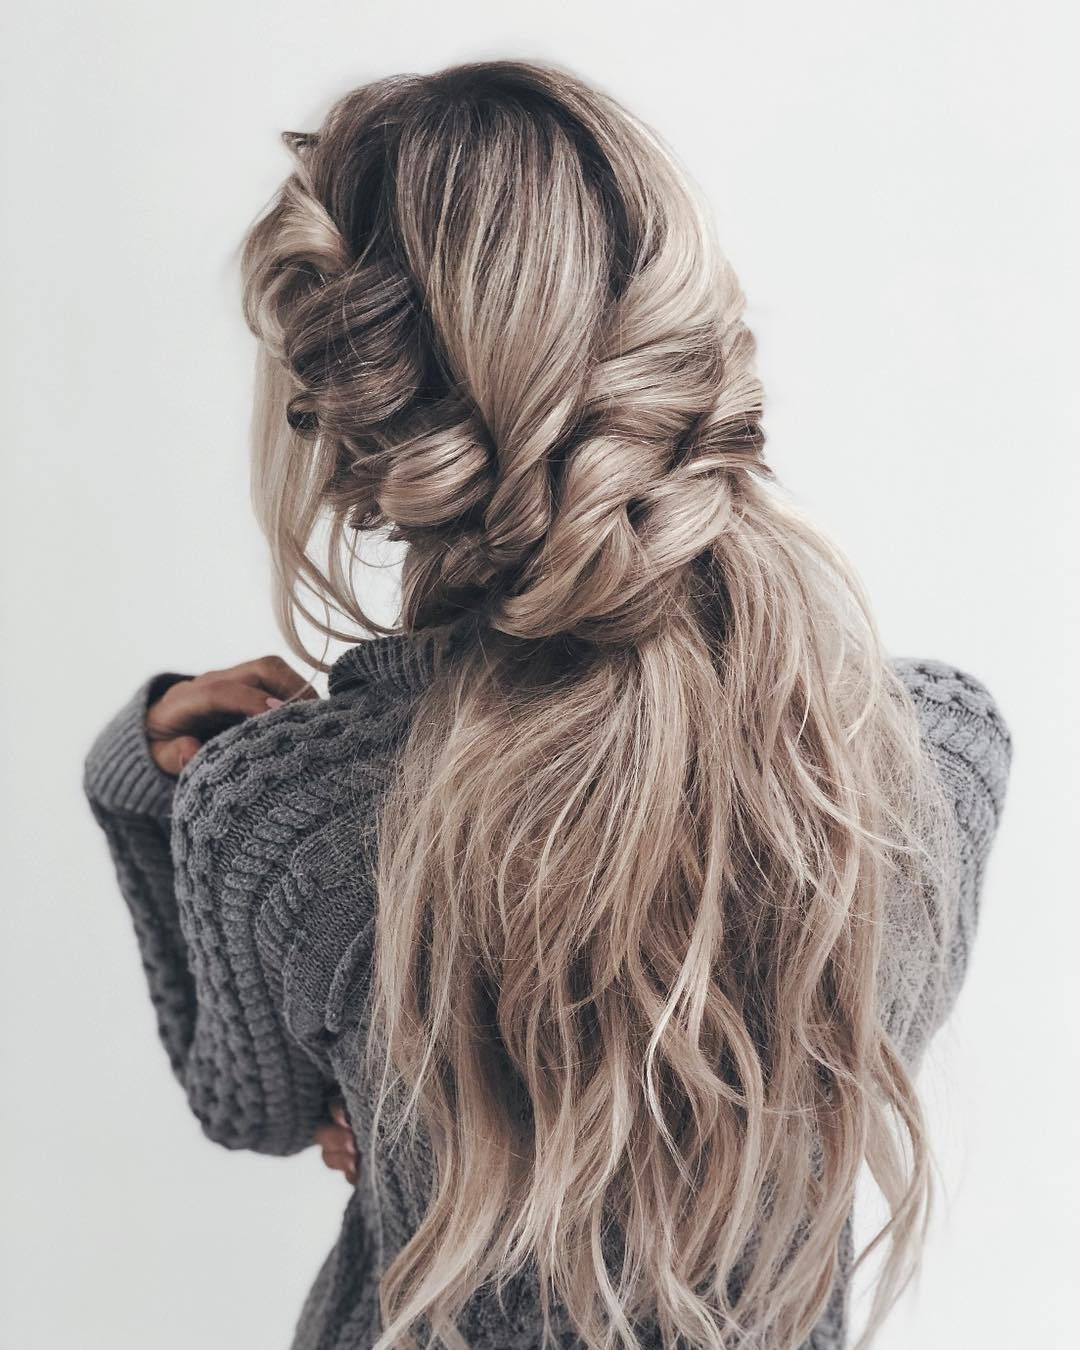 Blonde hair + pull through braid #braids #hairstyles #bohohairstyles